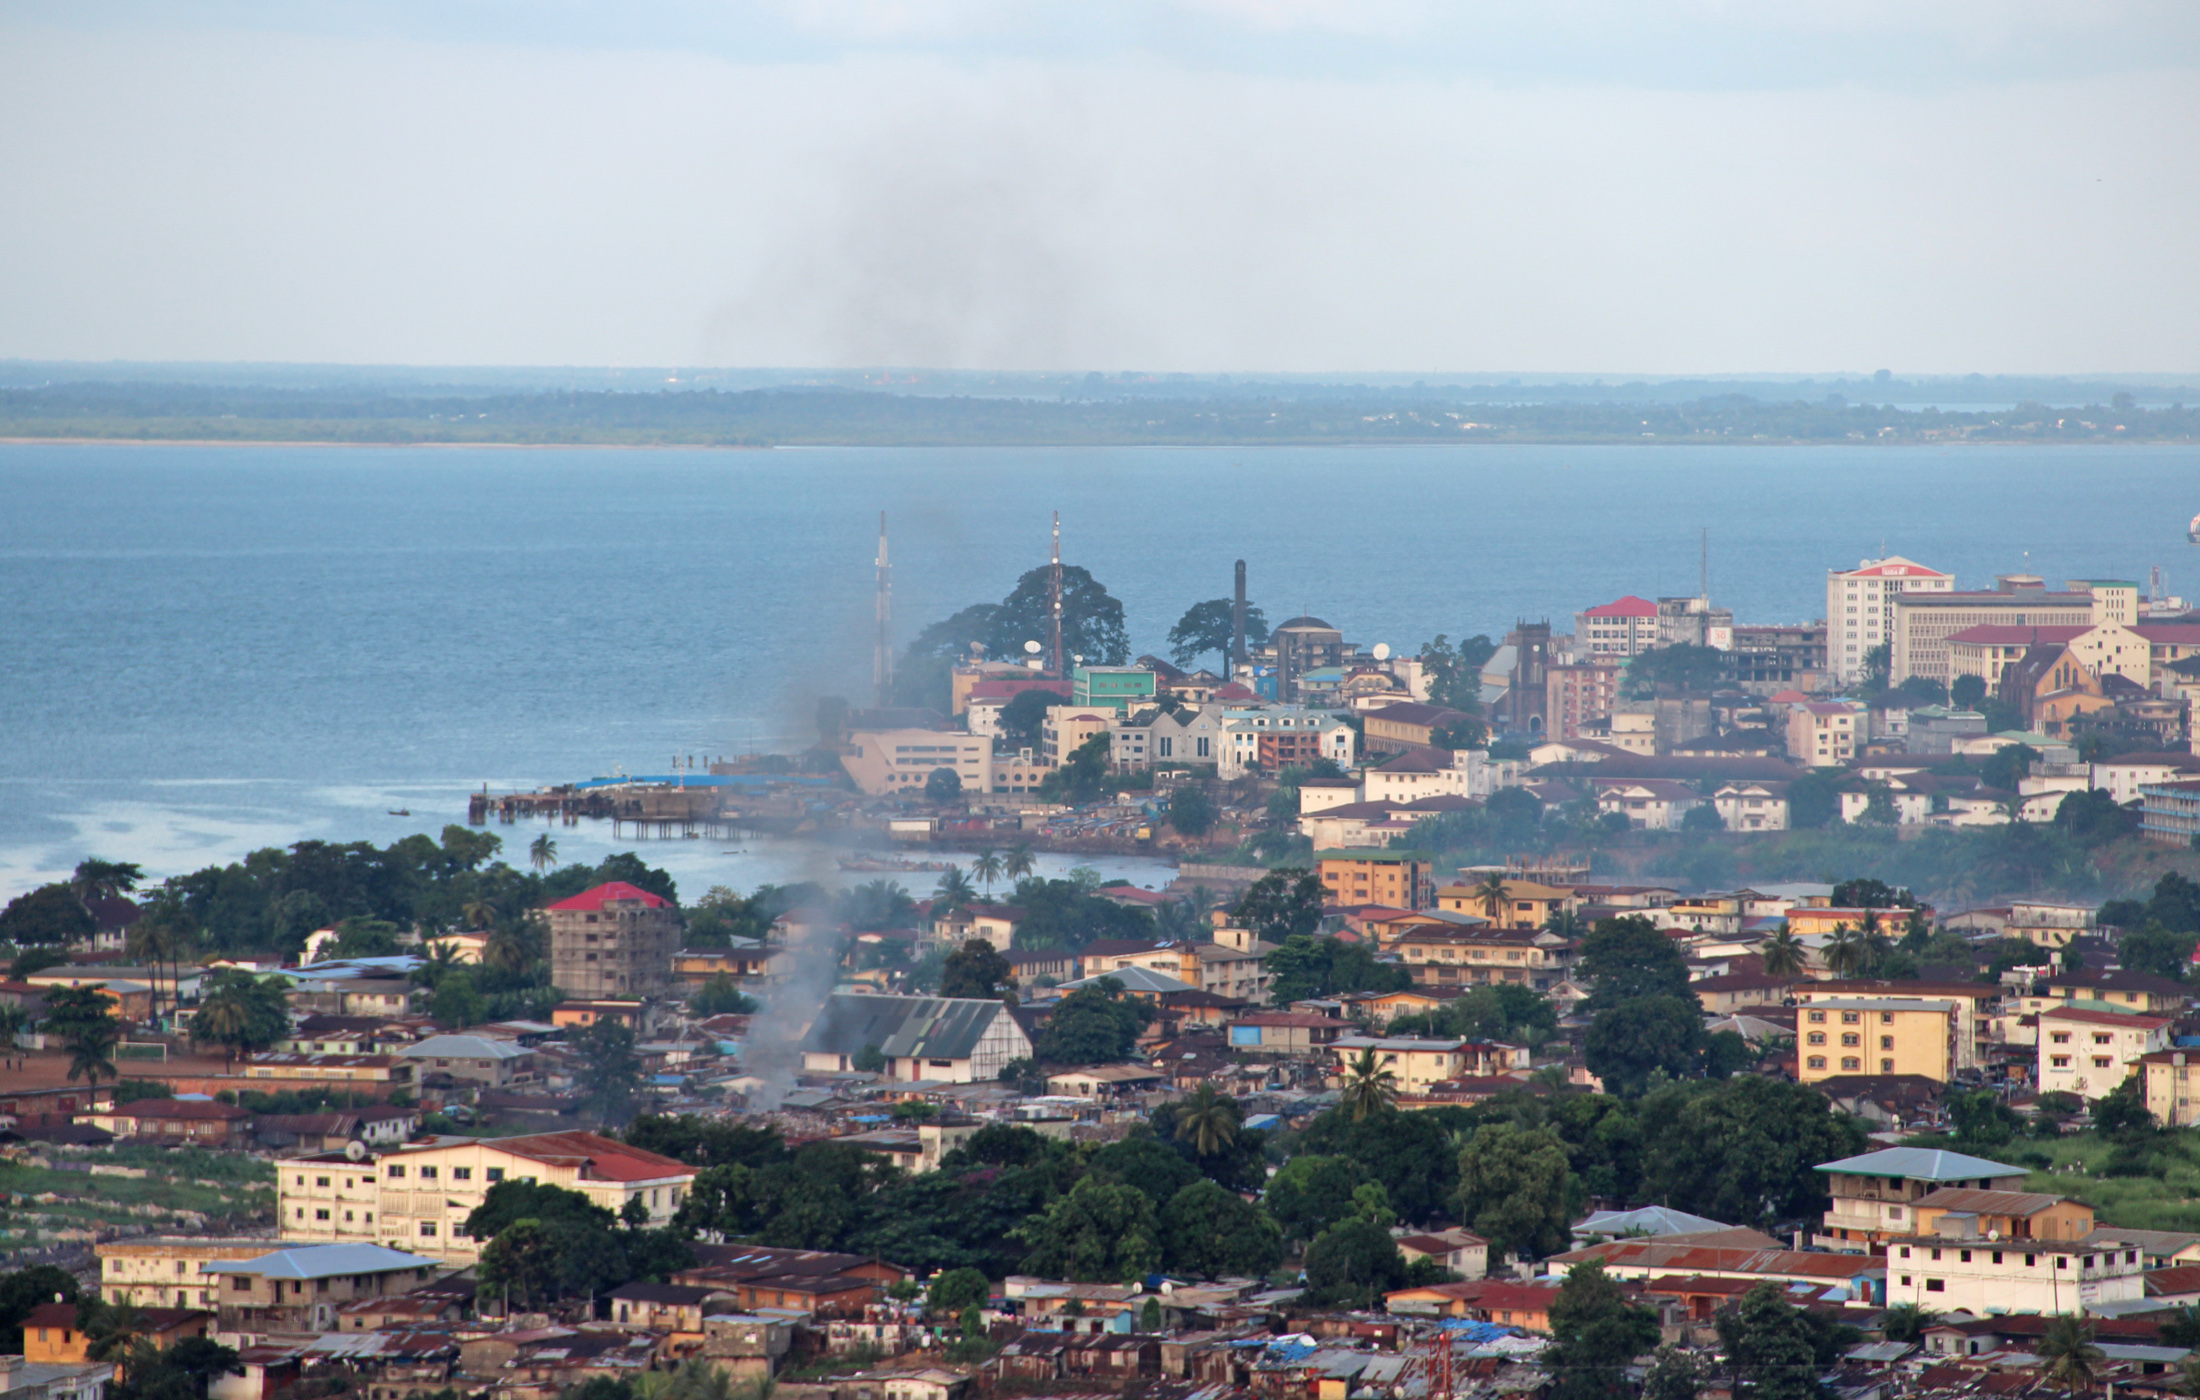 Downtown Freetown. Sexual violence is prevalent in Sierra Leone